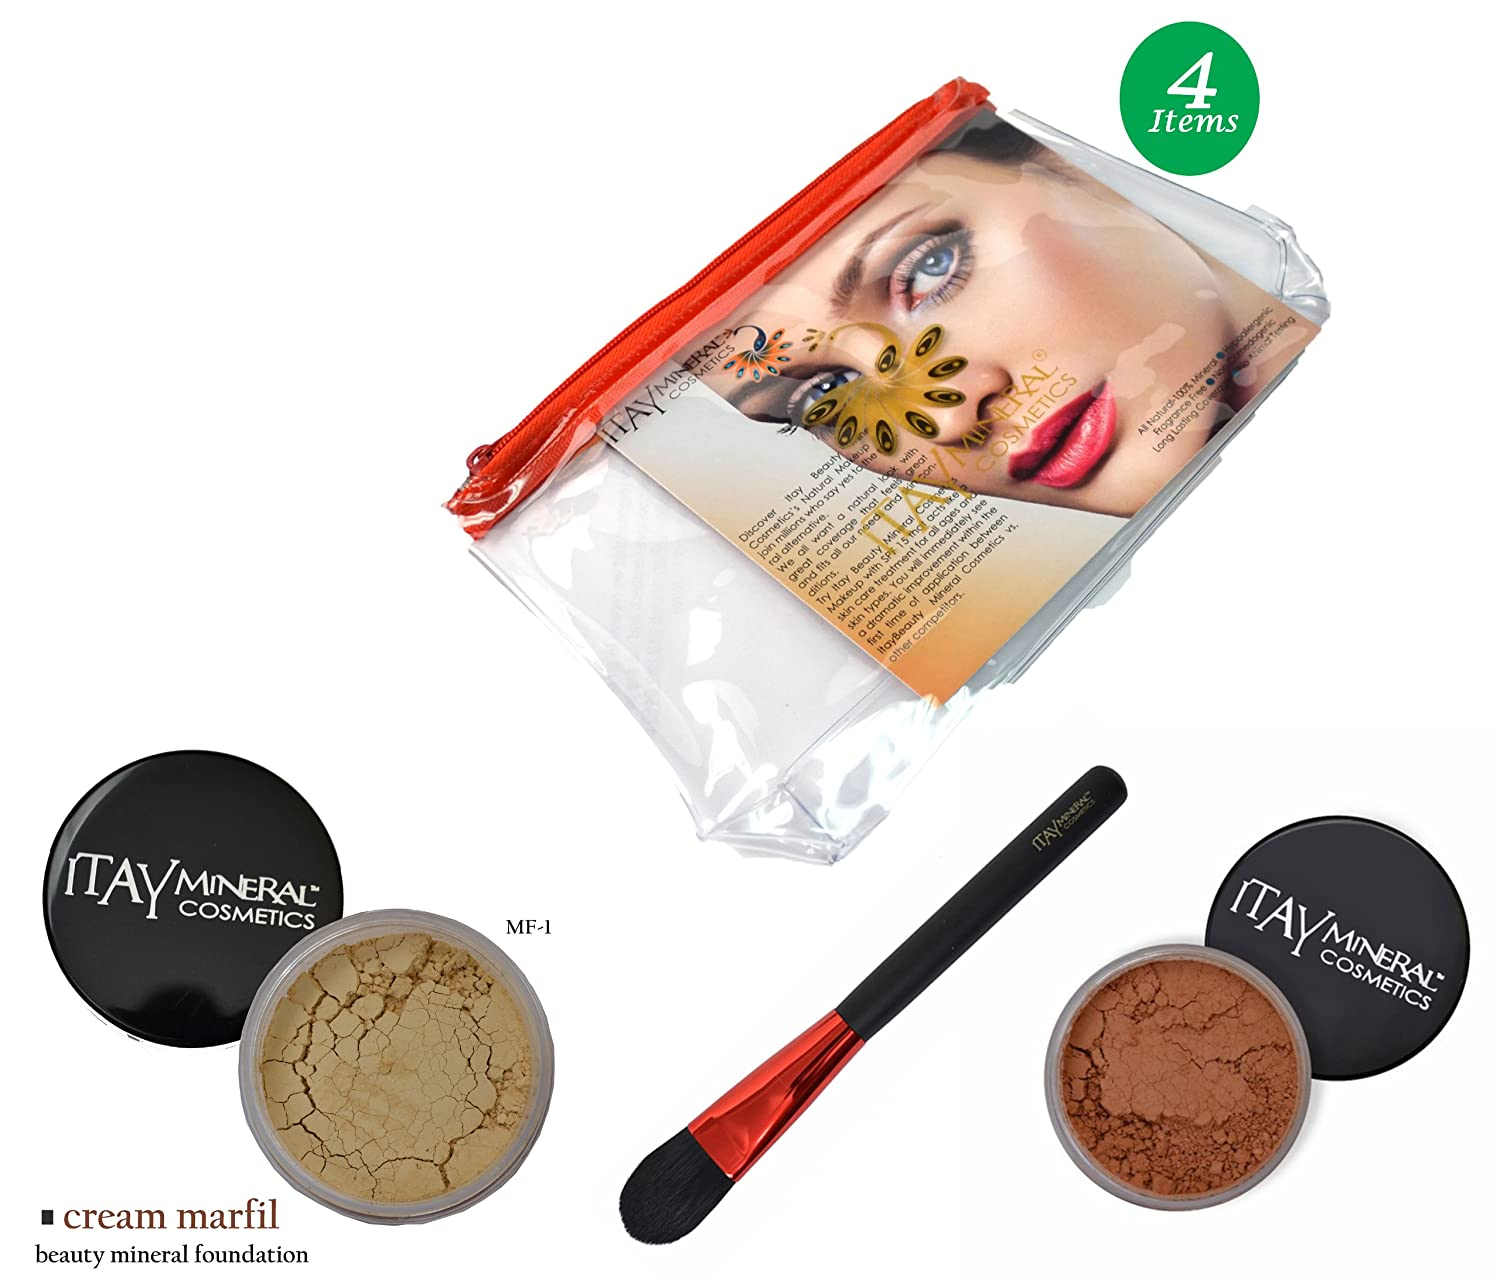 (Bundle of 4 Items) Itay Mineral Cosmetics Full Size Flawless Foundation MF1 Cream Marfil+Blush+Foundation Brush+Airplane Travel Cosmetic Bag (MB1 Harvest Eye) 81coD-SLzKL